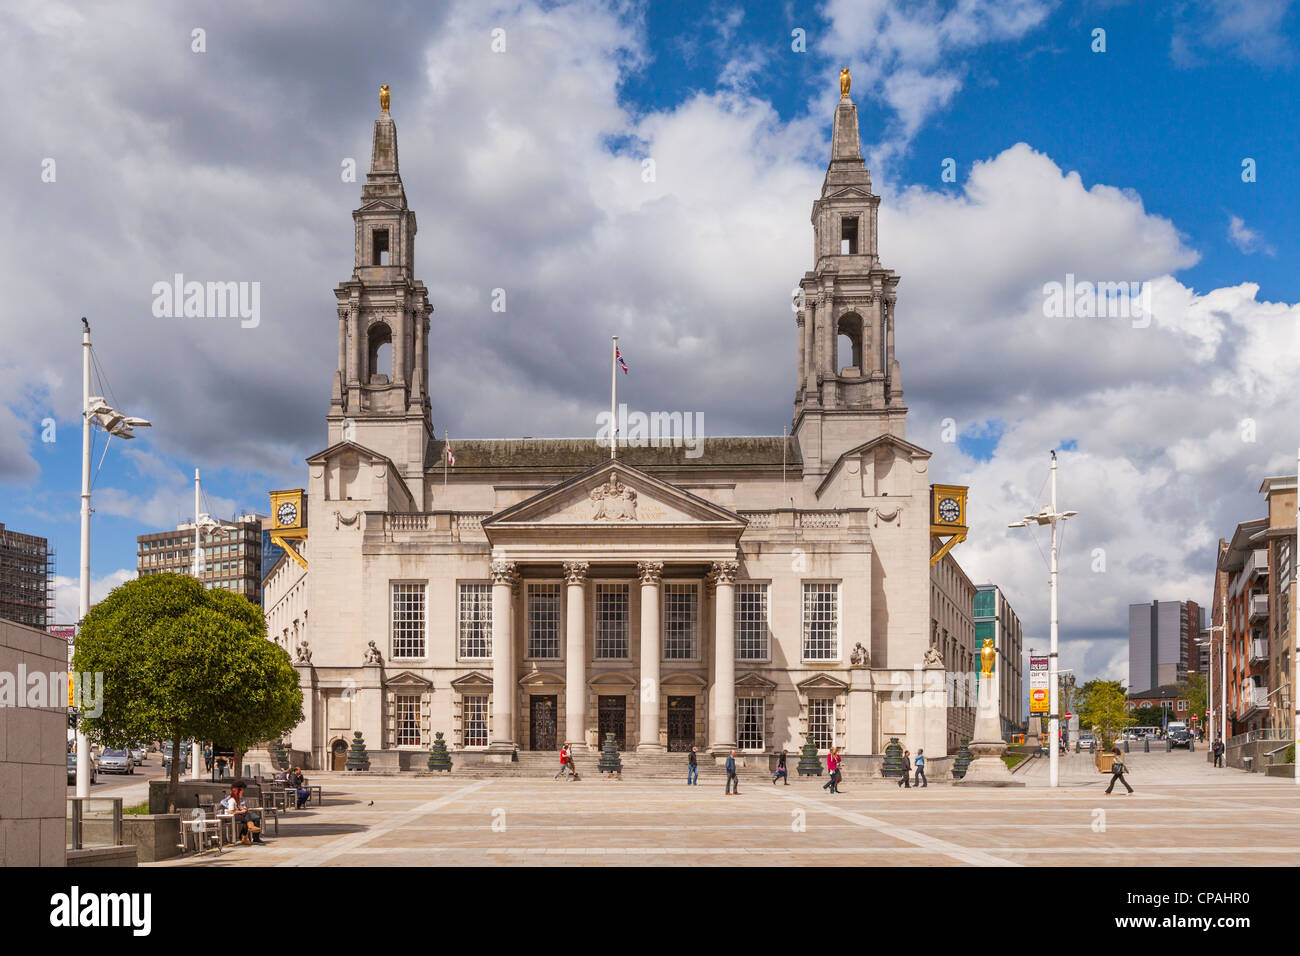 A view across Millenium Square to the Victorian facade of City Council on a sunny day in Leeds, West Yorkshire, - Stock Image